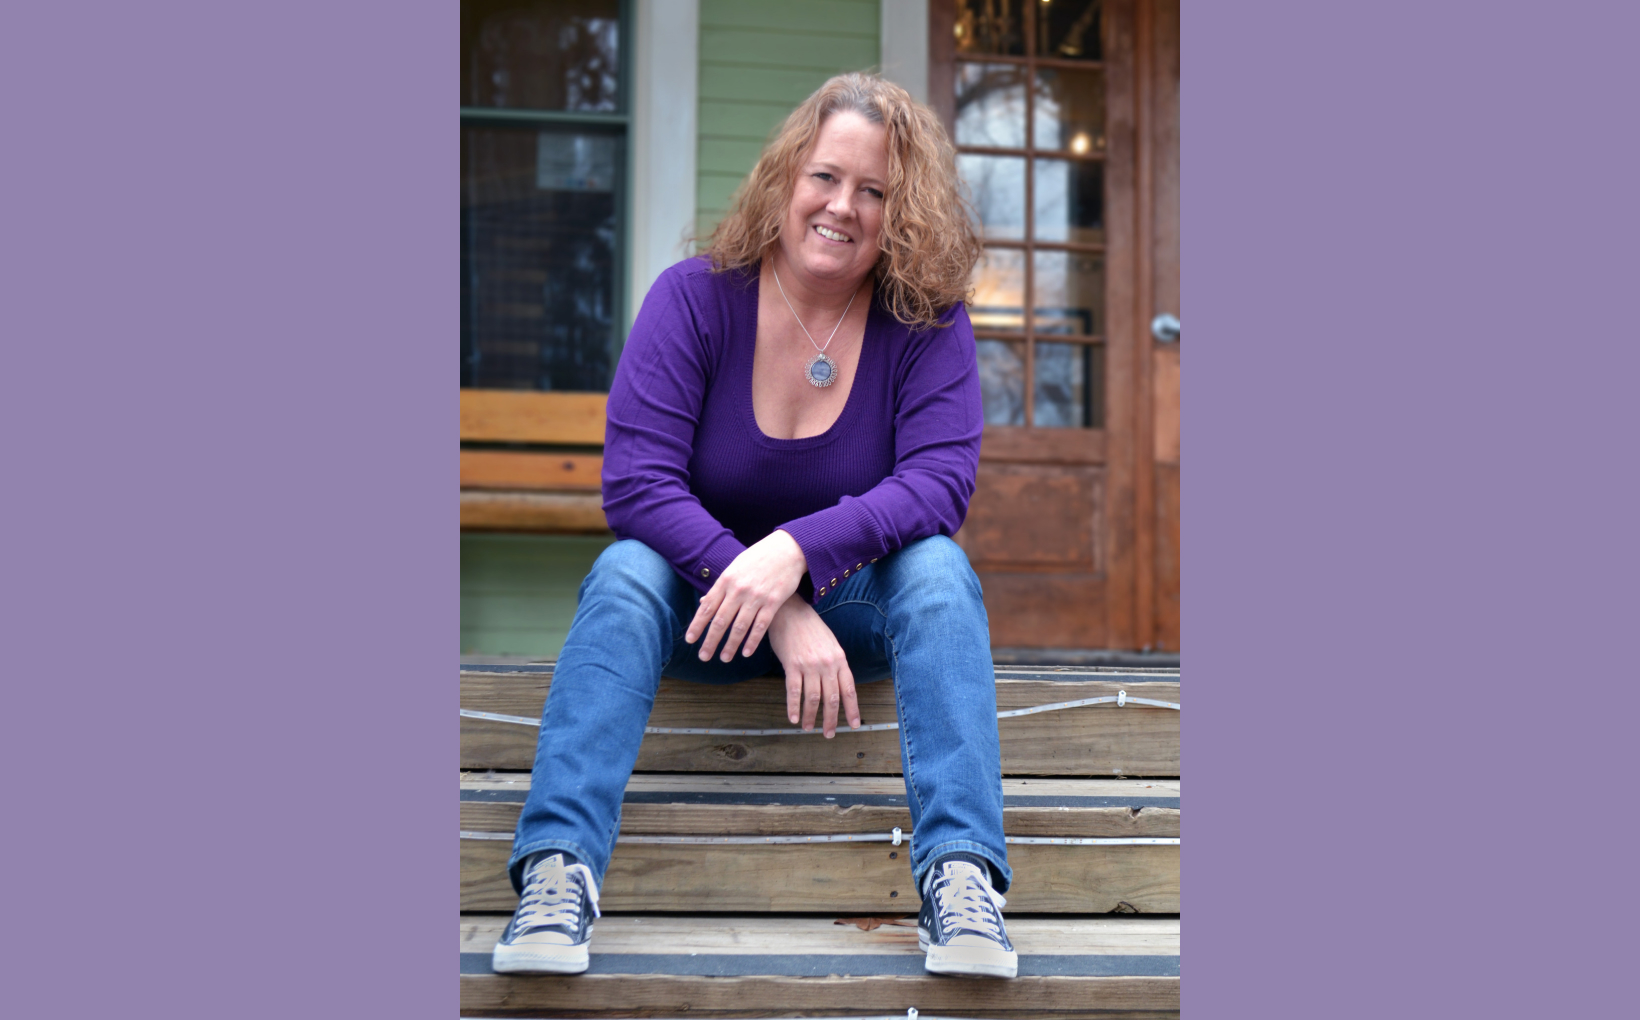 Jennifer sitting on the steps if her porch, smiling to the camera. She's wearing a purple top, blue jeans, Converse, and a necklace of her own design.